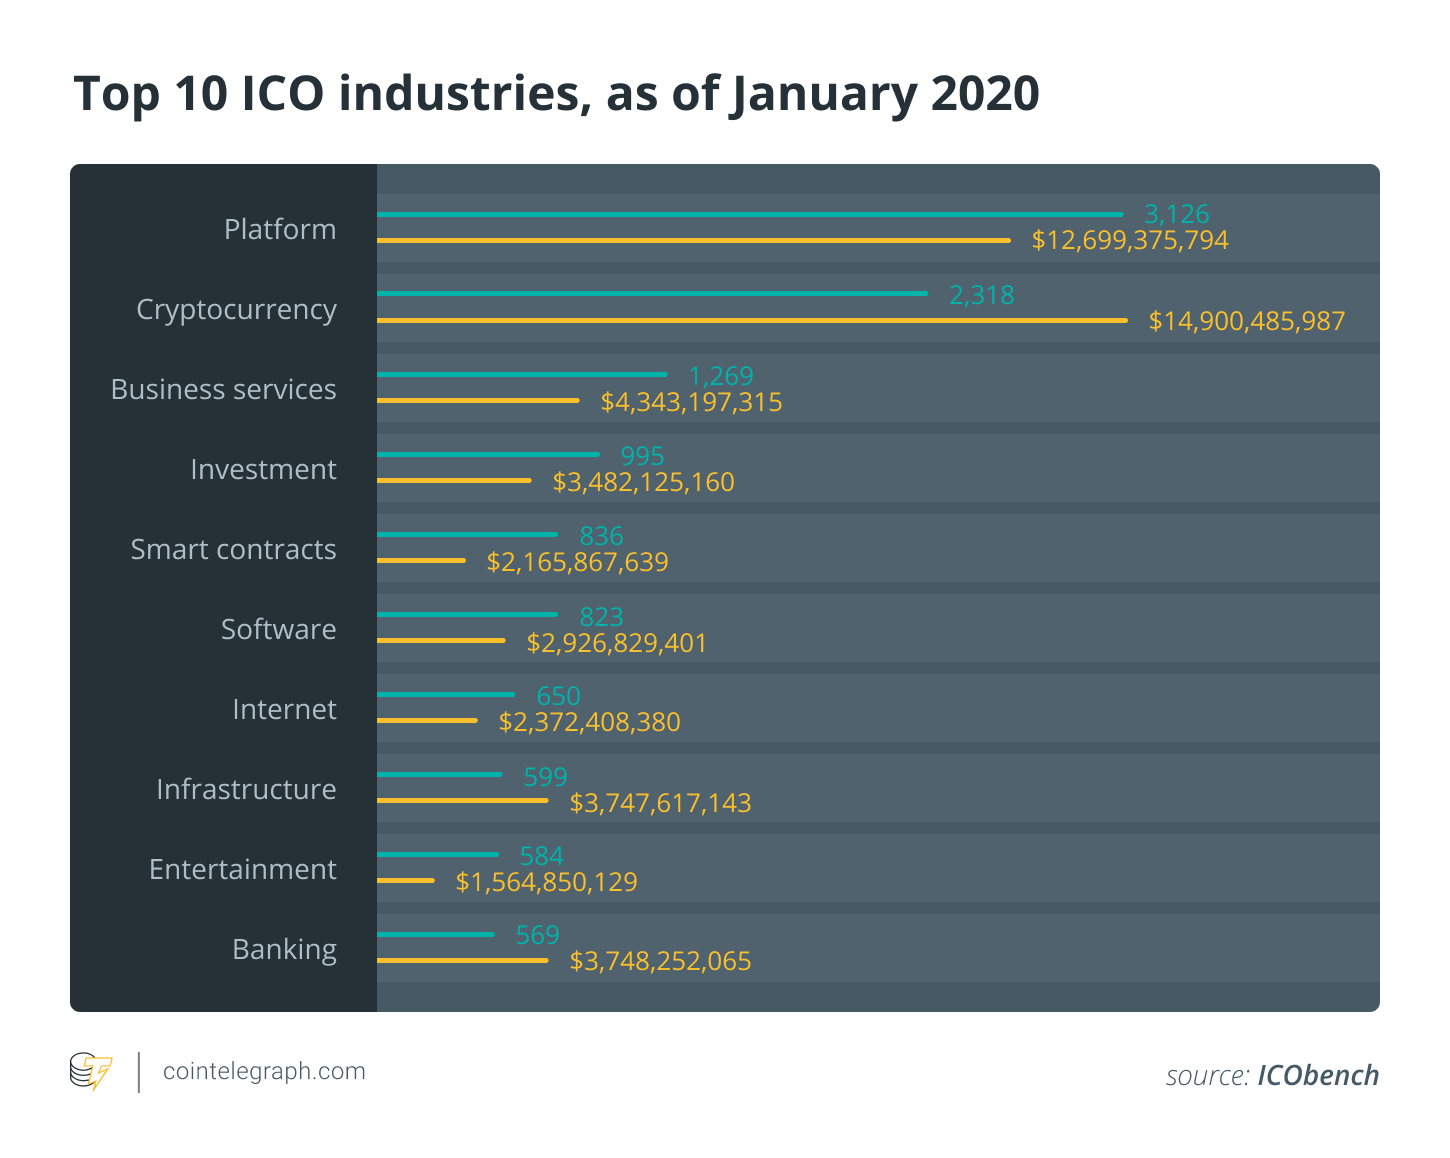 Top 10 ICO industries, as of January 2020